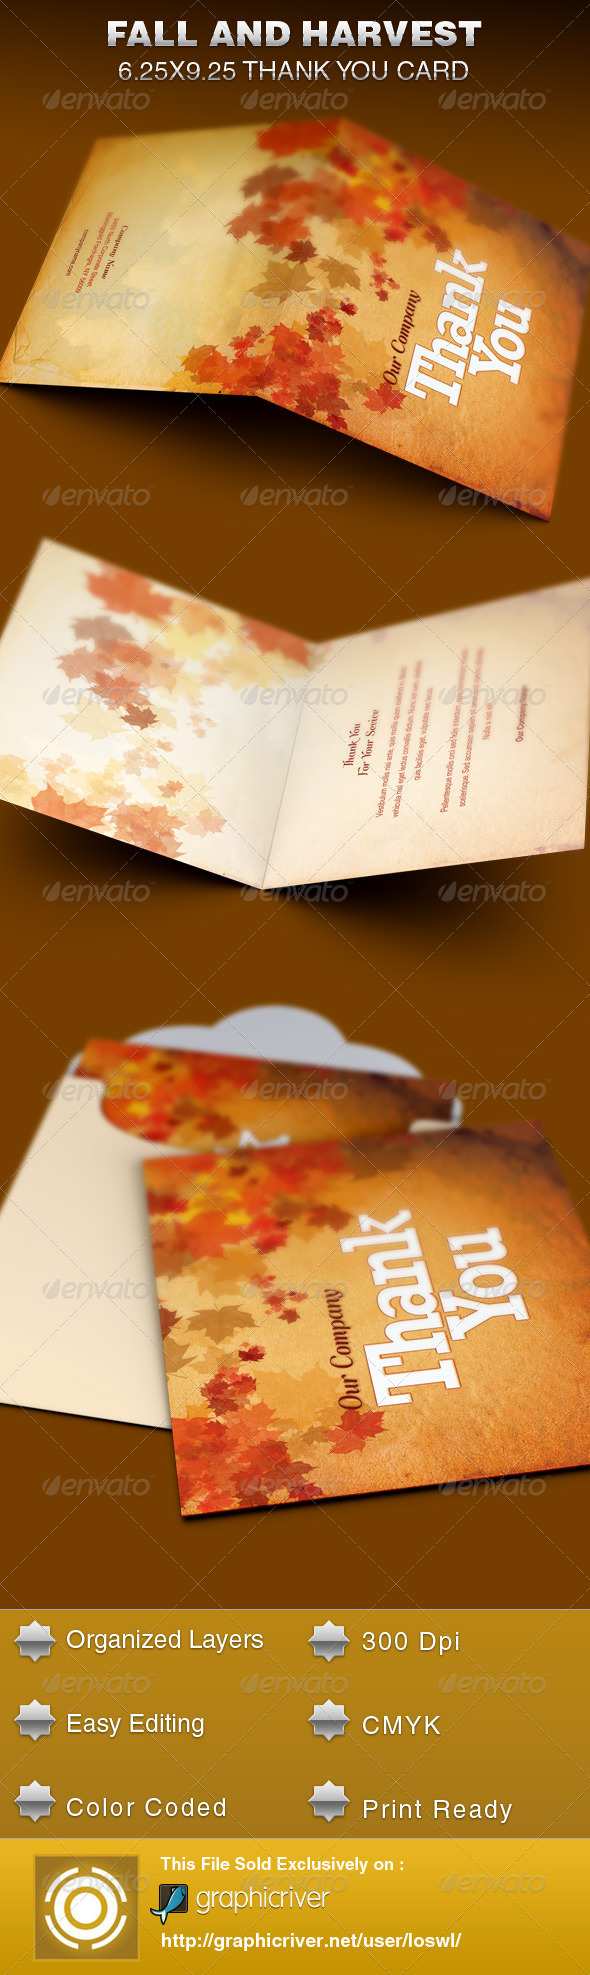 GraphicRiver Fall and Harvest Thank You Card Template 6158686